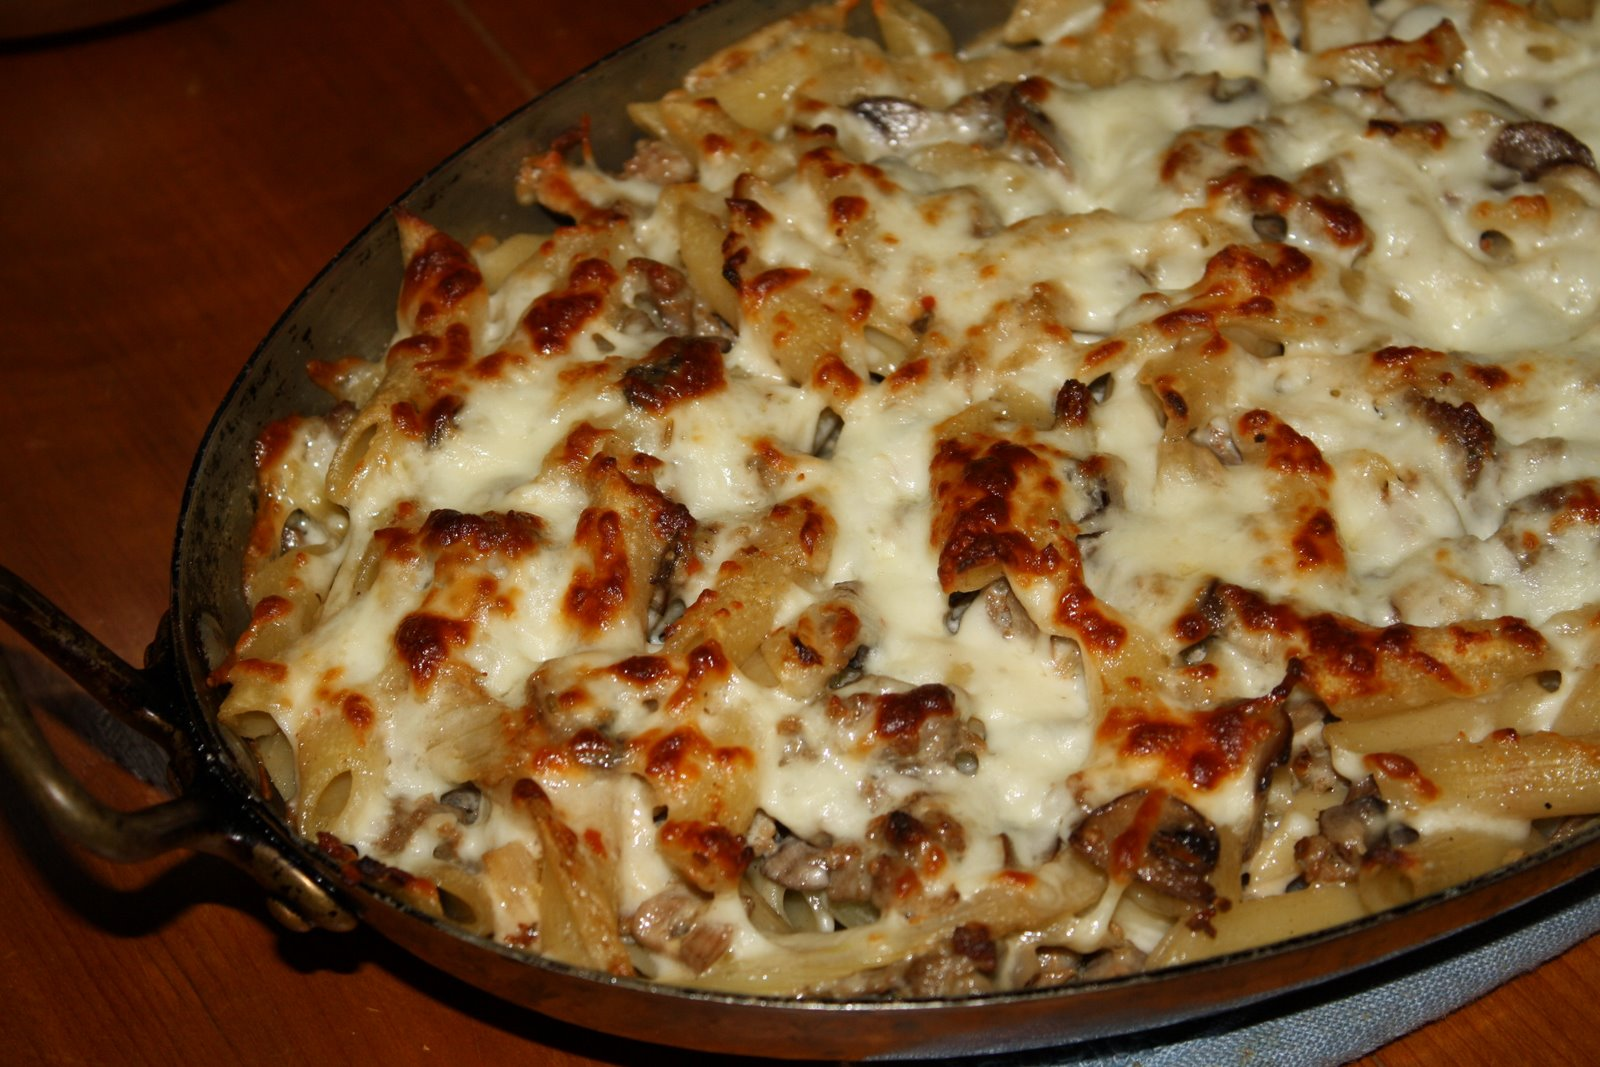 Penne Gratin with Sausage, Fennel, and Mushrooms